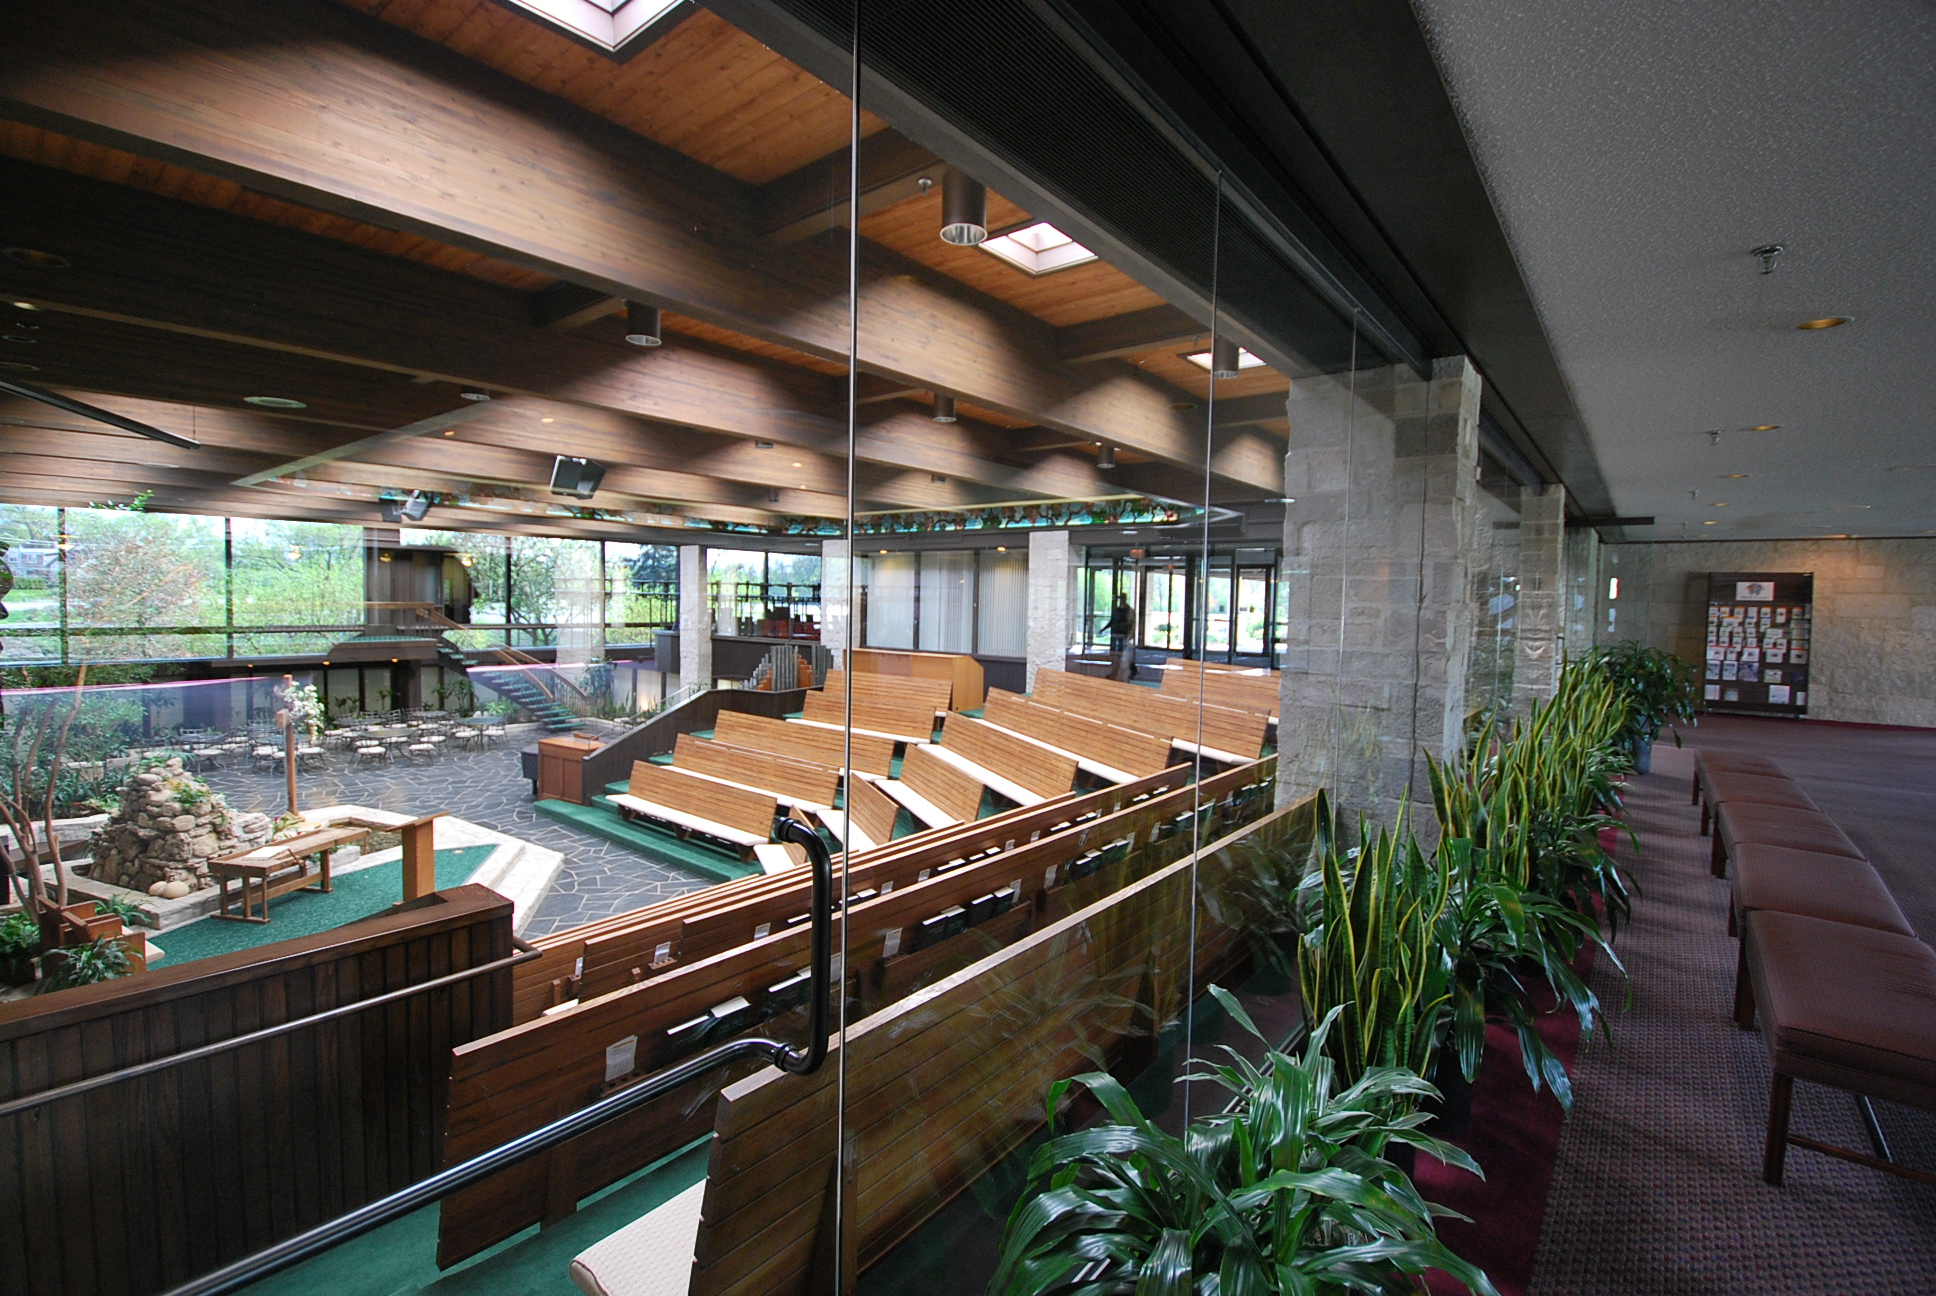 Christ Church of Oak Brook